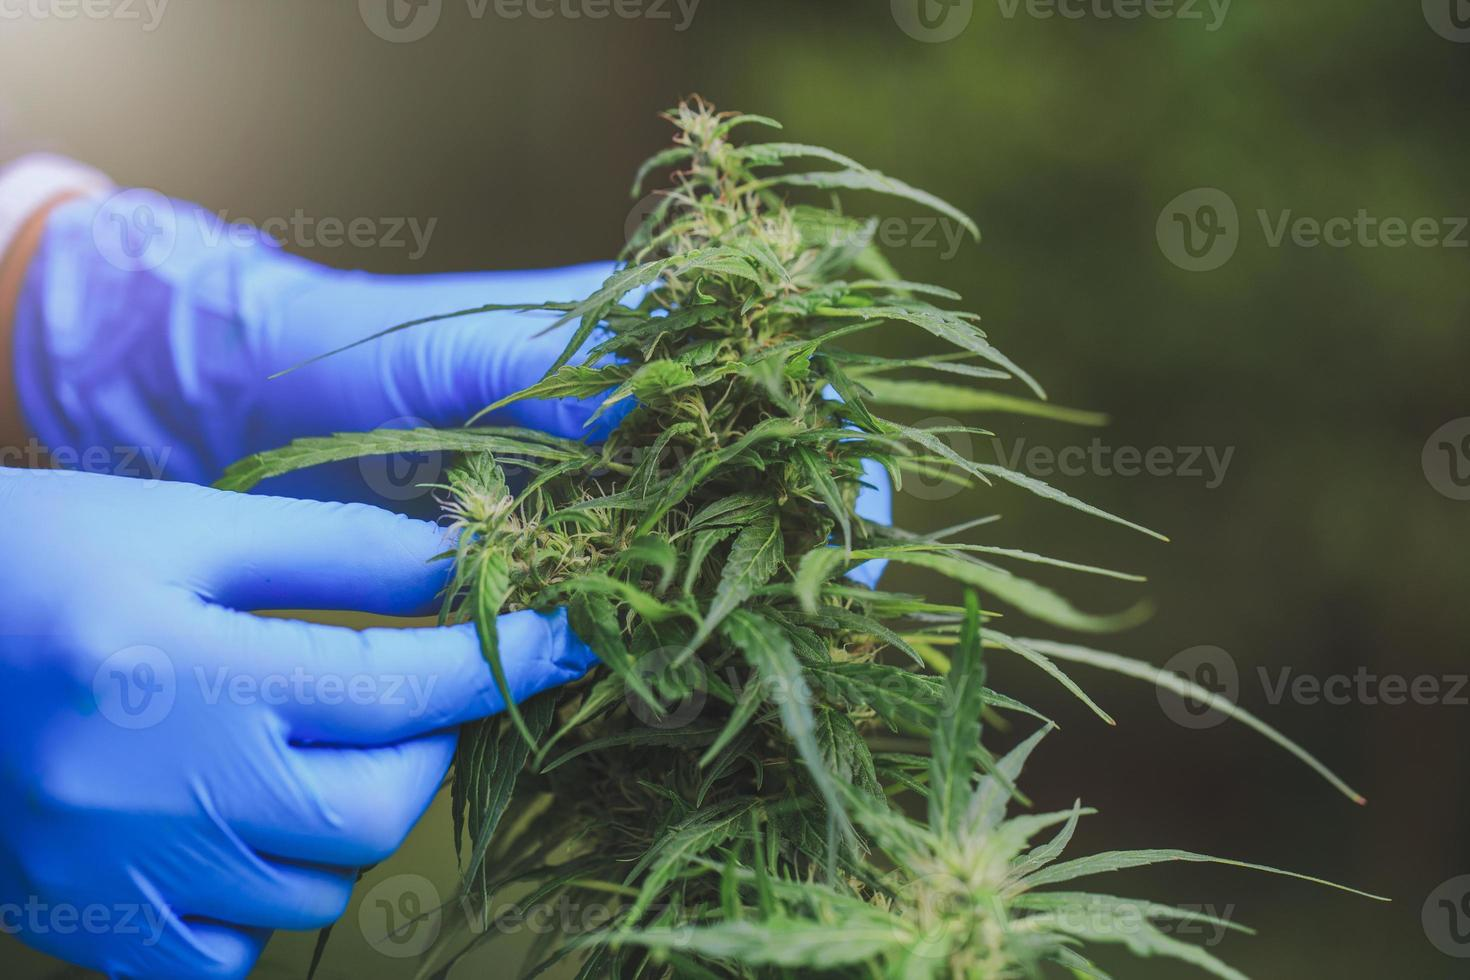 Researchers use hand to hold or examine cannabis plants . photo